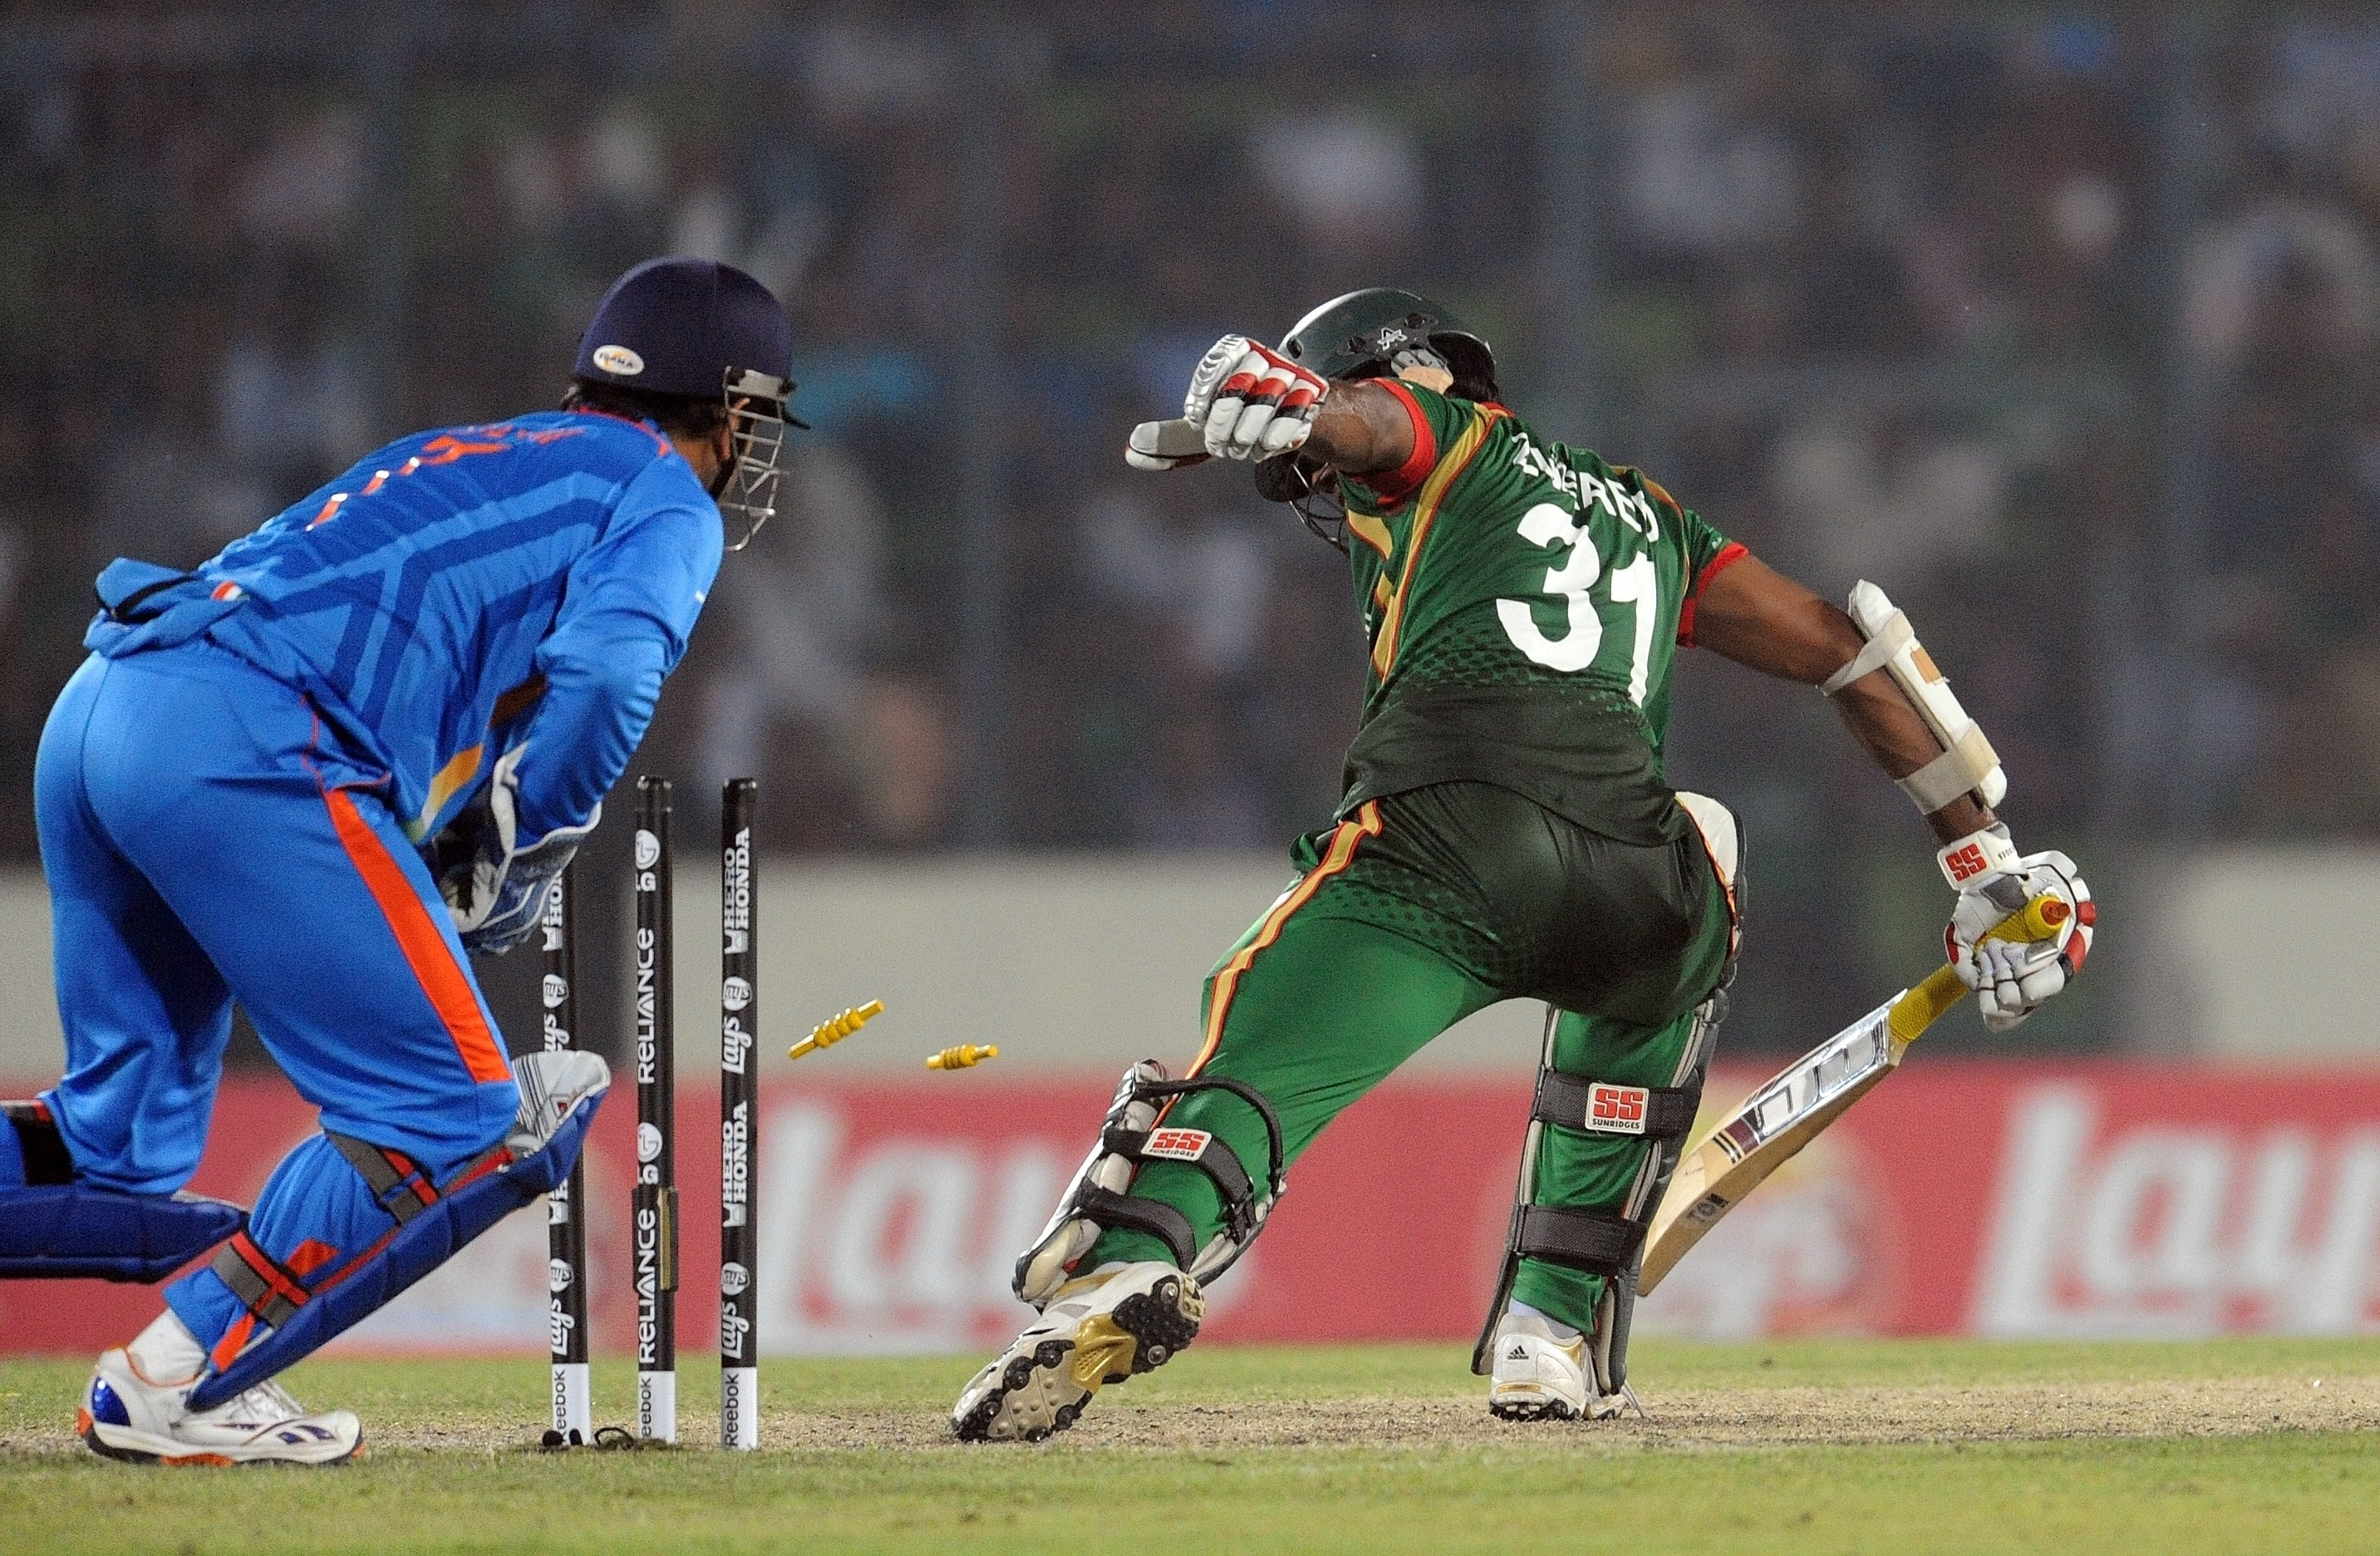 MS Dhoni successfully stumps out Junaid Siddique off the bowling of Harbhajan Singh during the first match in the World Cup tournament between Bangladesh and India at the Sher-e Bangla National Stadium in Dhaka. (AFP Photo)